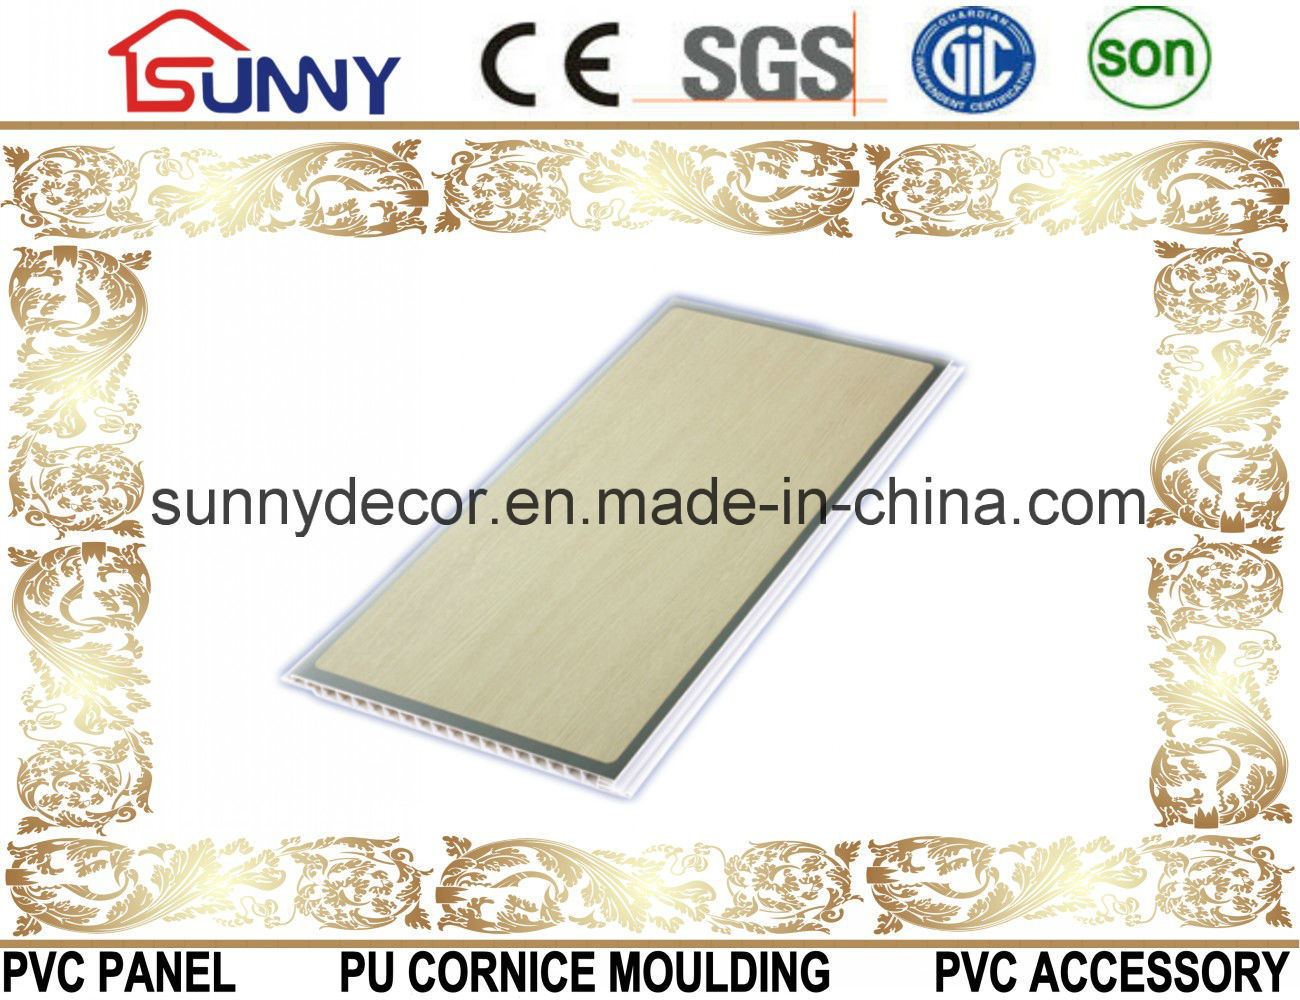 Qualified PVC Ceilings & Wall Panel for Interior Decoration